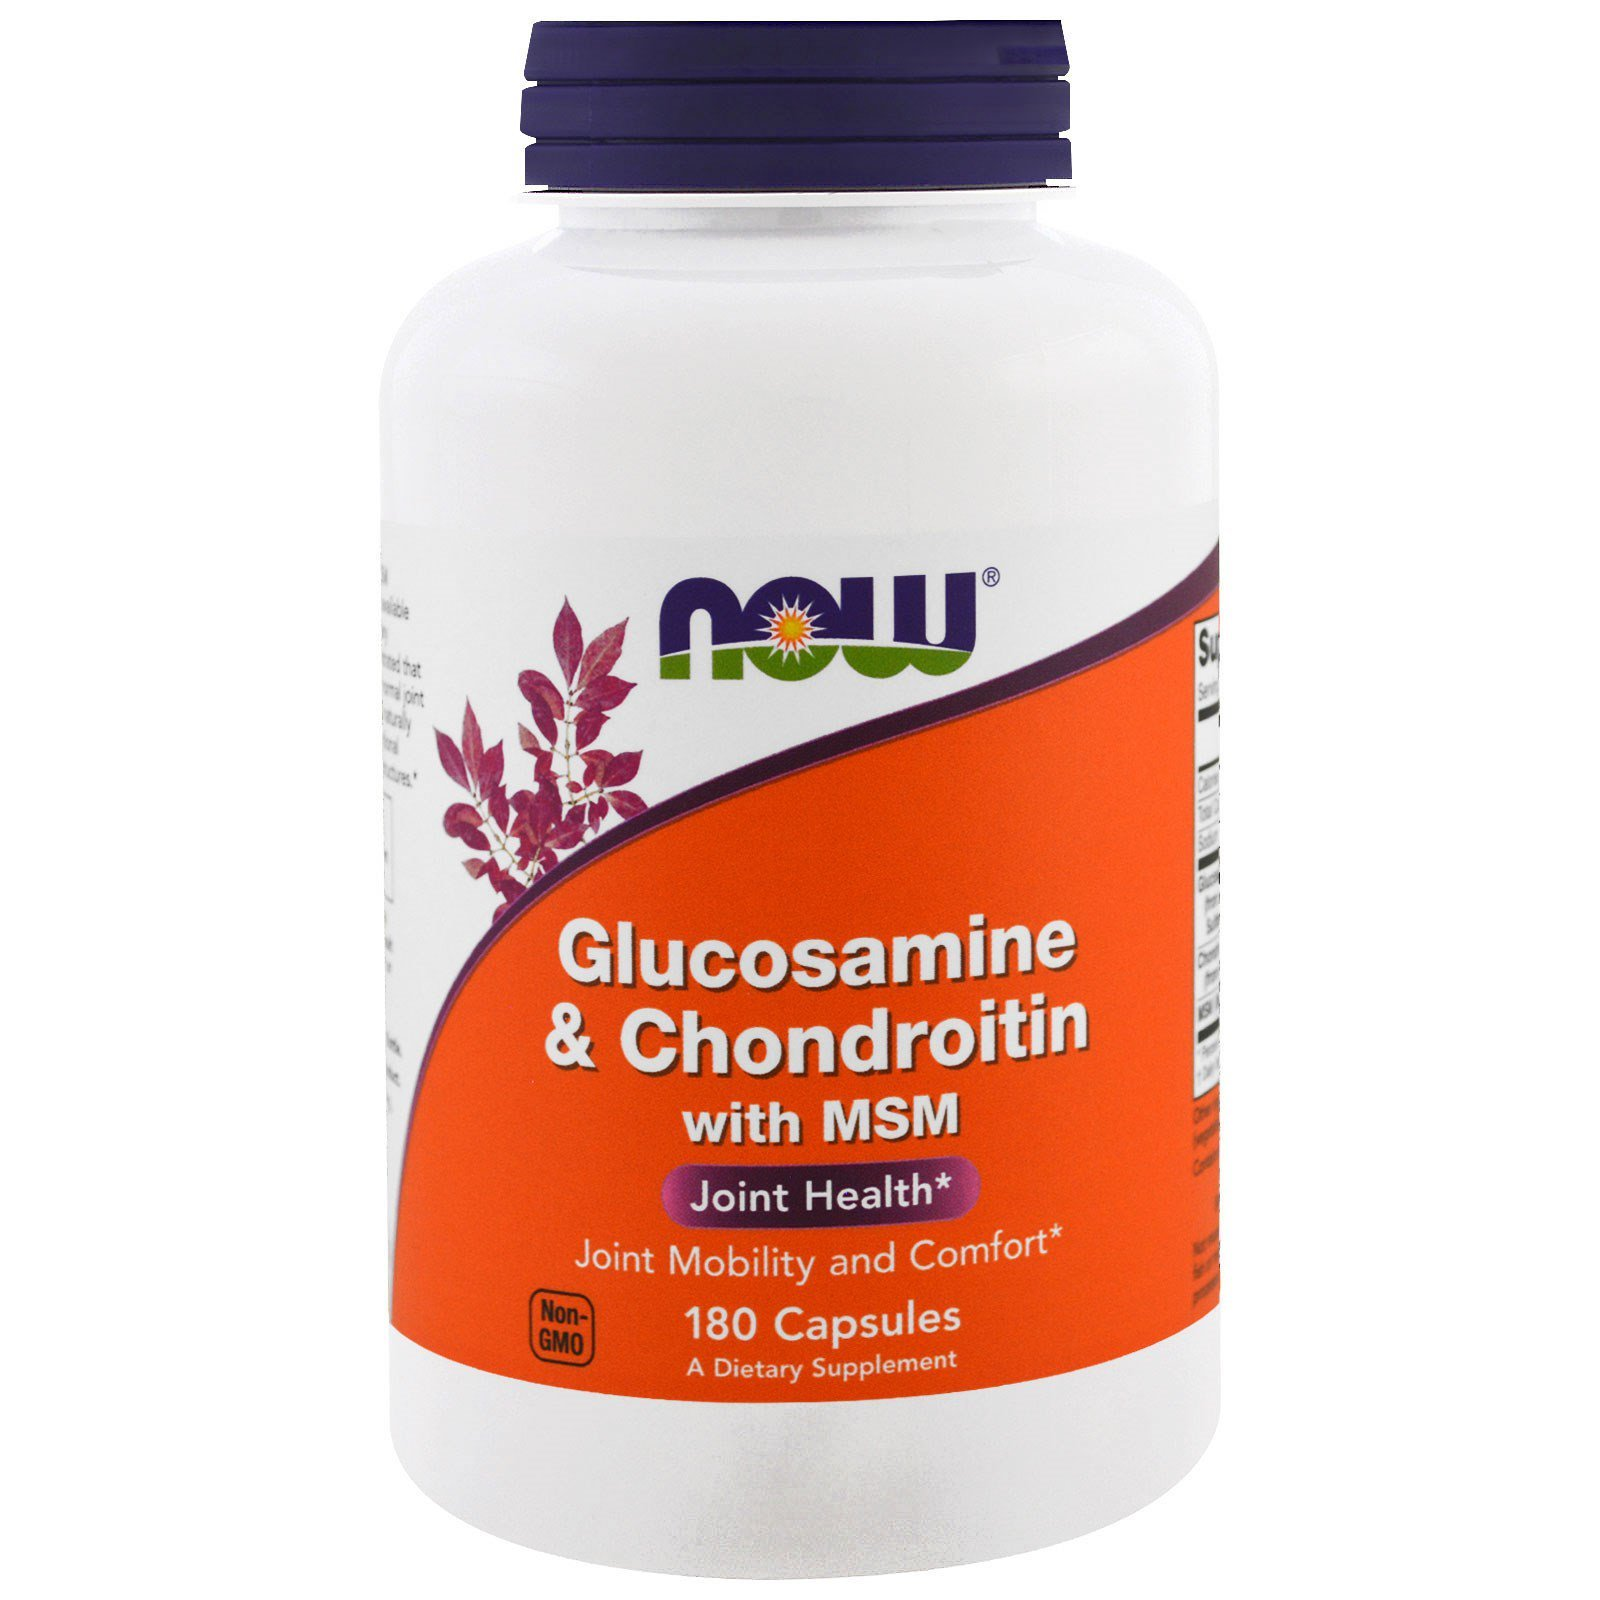 Глюкозамін і хондроїтин з MСM, Glucosamine & Chondroitin with MSM, Now Foods, 180 капсул